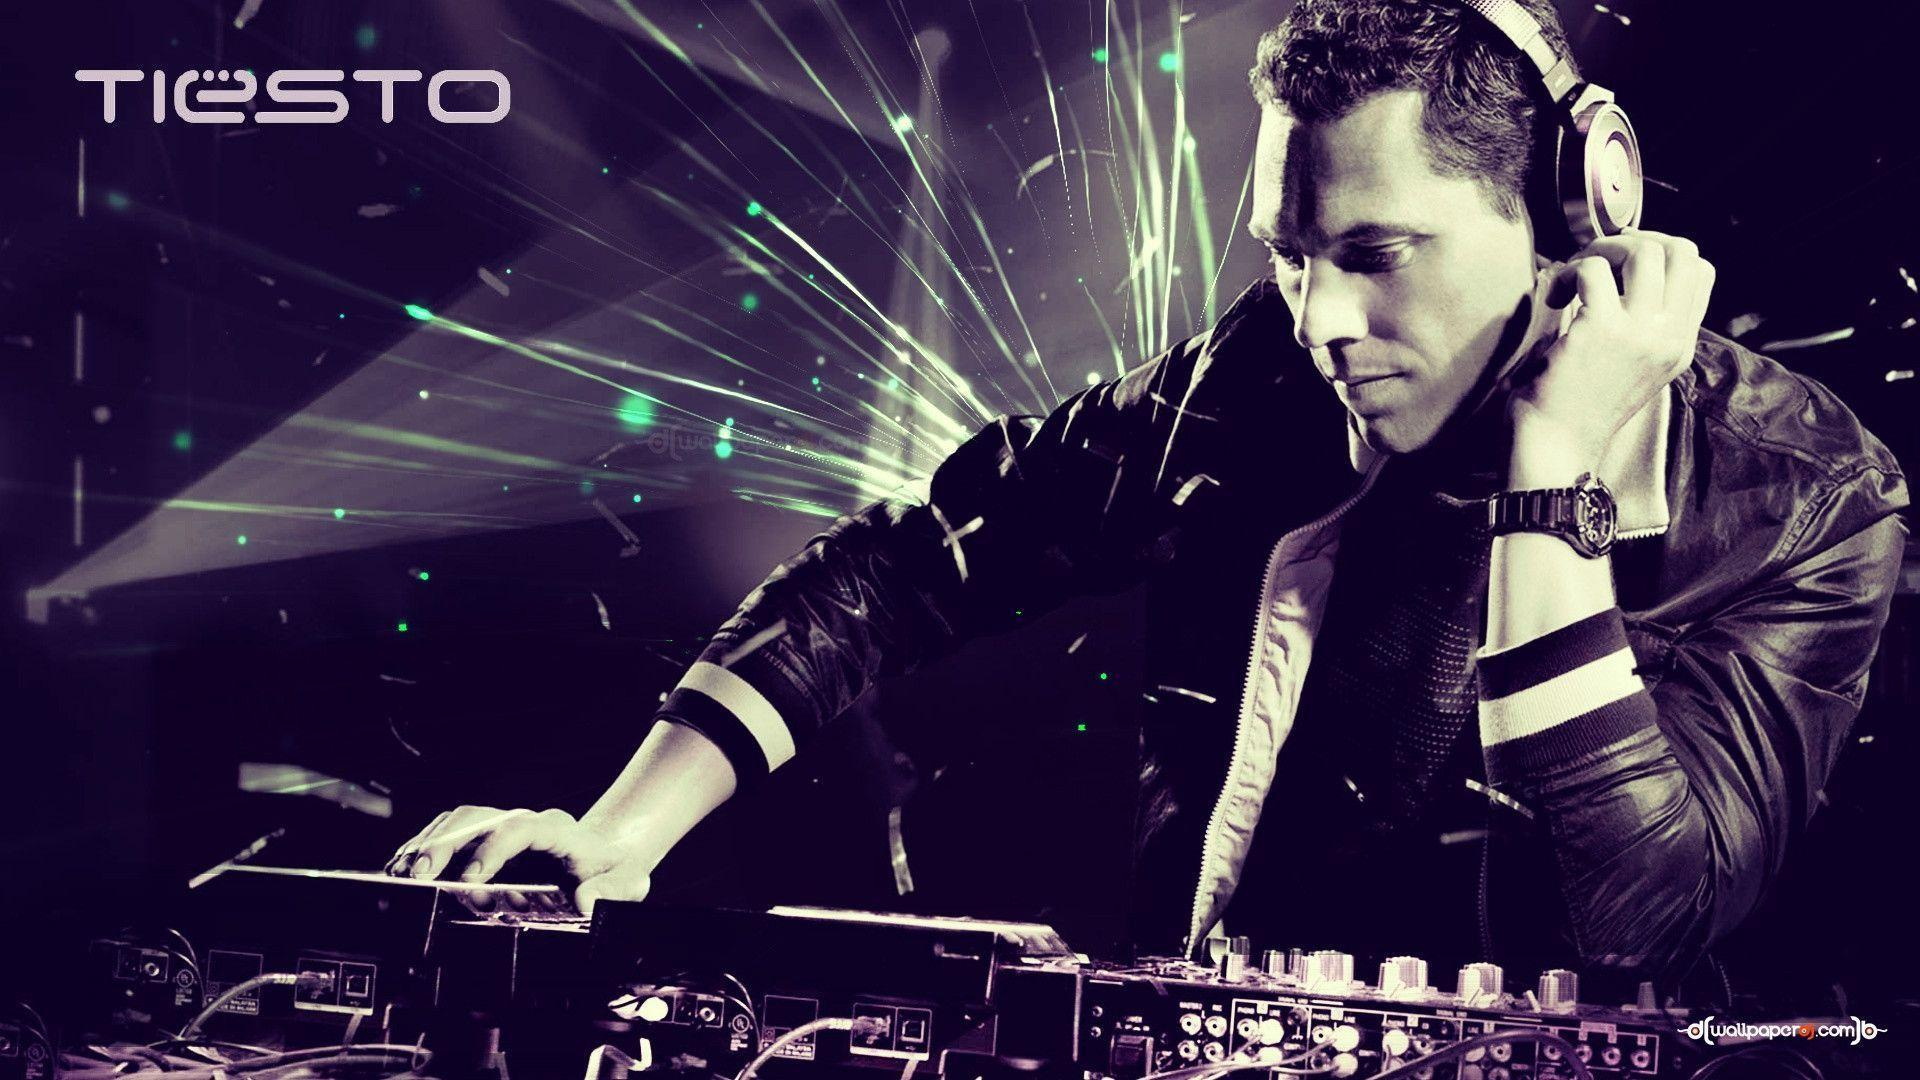 Tiesto Wallpapers Hd Wallpaper Cave